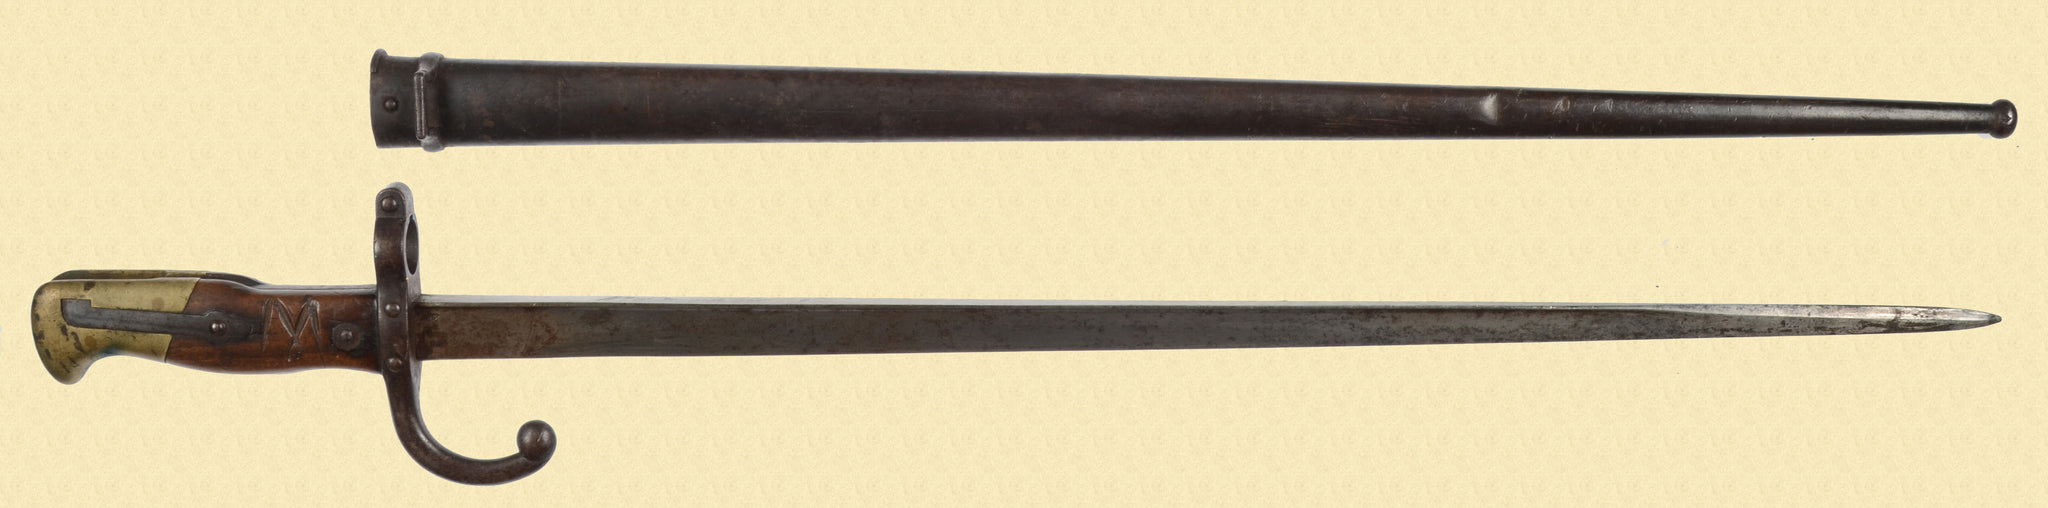 FRENCH M1874 BAYONET